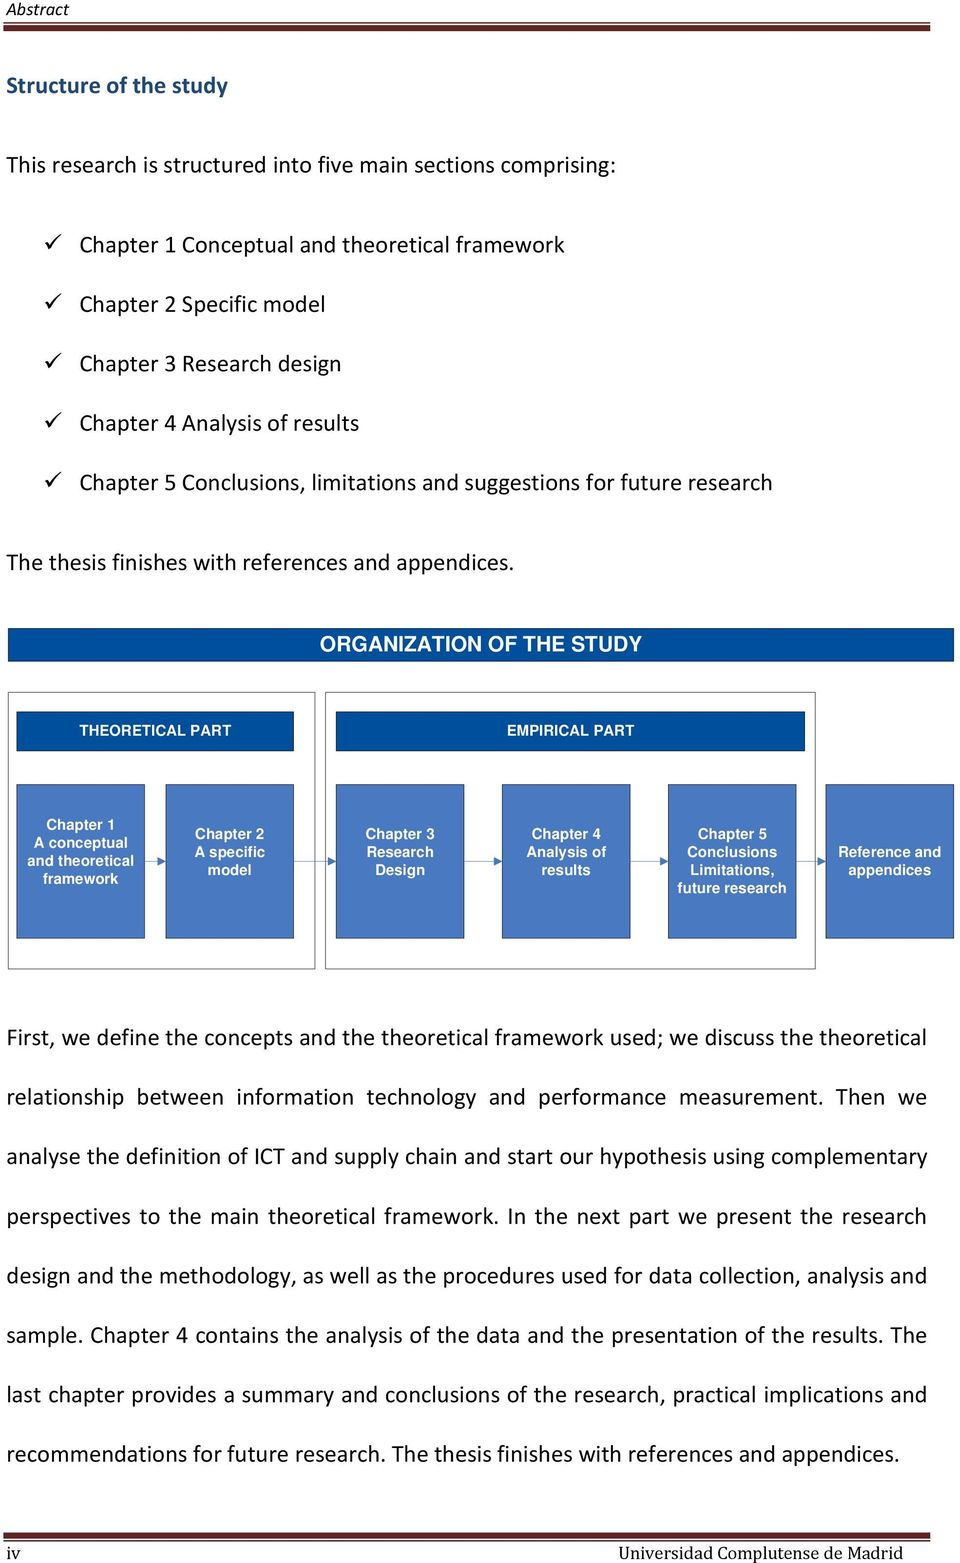 ORGANIZATION OF THE STUDY THEORETICAL PART EMPIRICAL PART Chapter 1 A conceptual and theoretical framework Chapter 2 A specific model Chapter 3 Research Design Chapter 4 Analysis of results Chapter 5